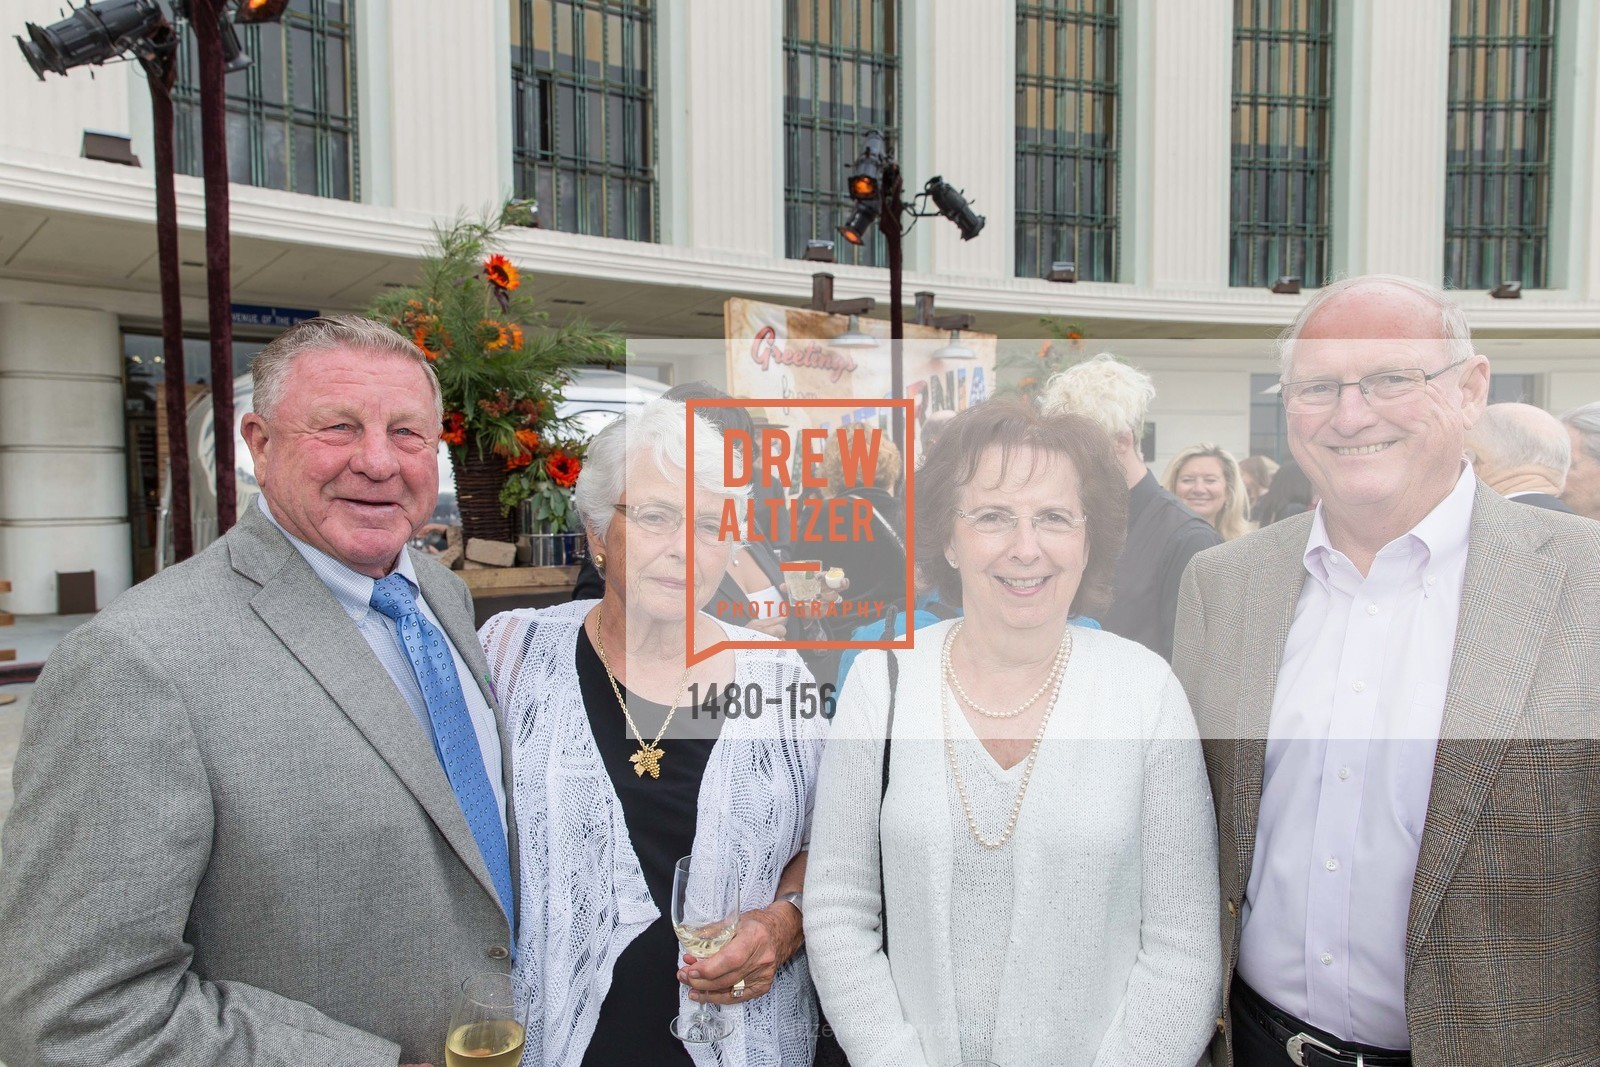 John Kautz, Gail Kautz, Delfie Schrimp, Roger Schrimp, California State Parks Foundation's GOLDEN POPPY AWARDS, Treasure Island Building One. 1 Avenue of the Palms, June 5th, 2015,Drew Altizer, Drew Altizer Photography, full-service agency, private events, San Francisco photographer, photographer california